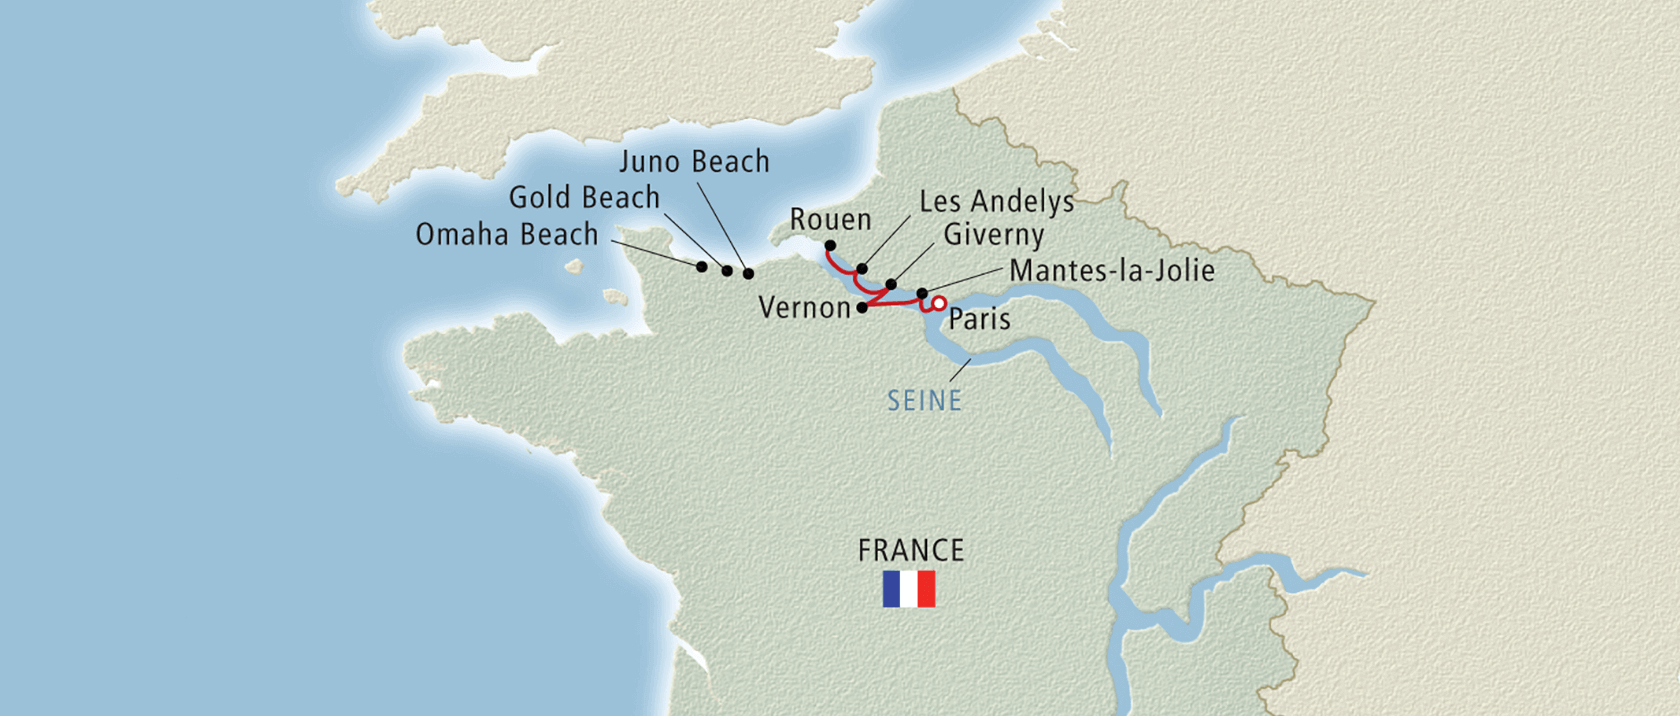 Map of Seine river region